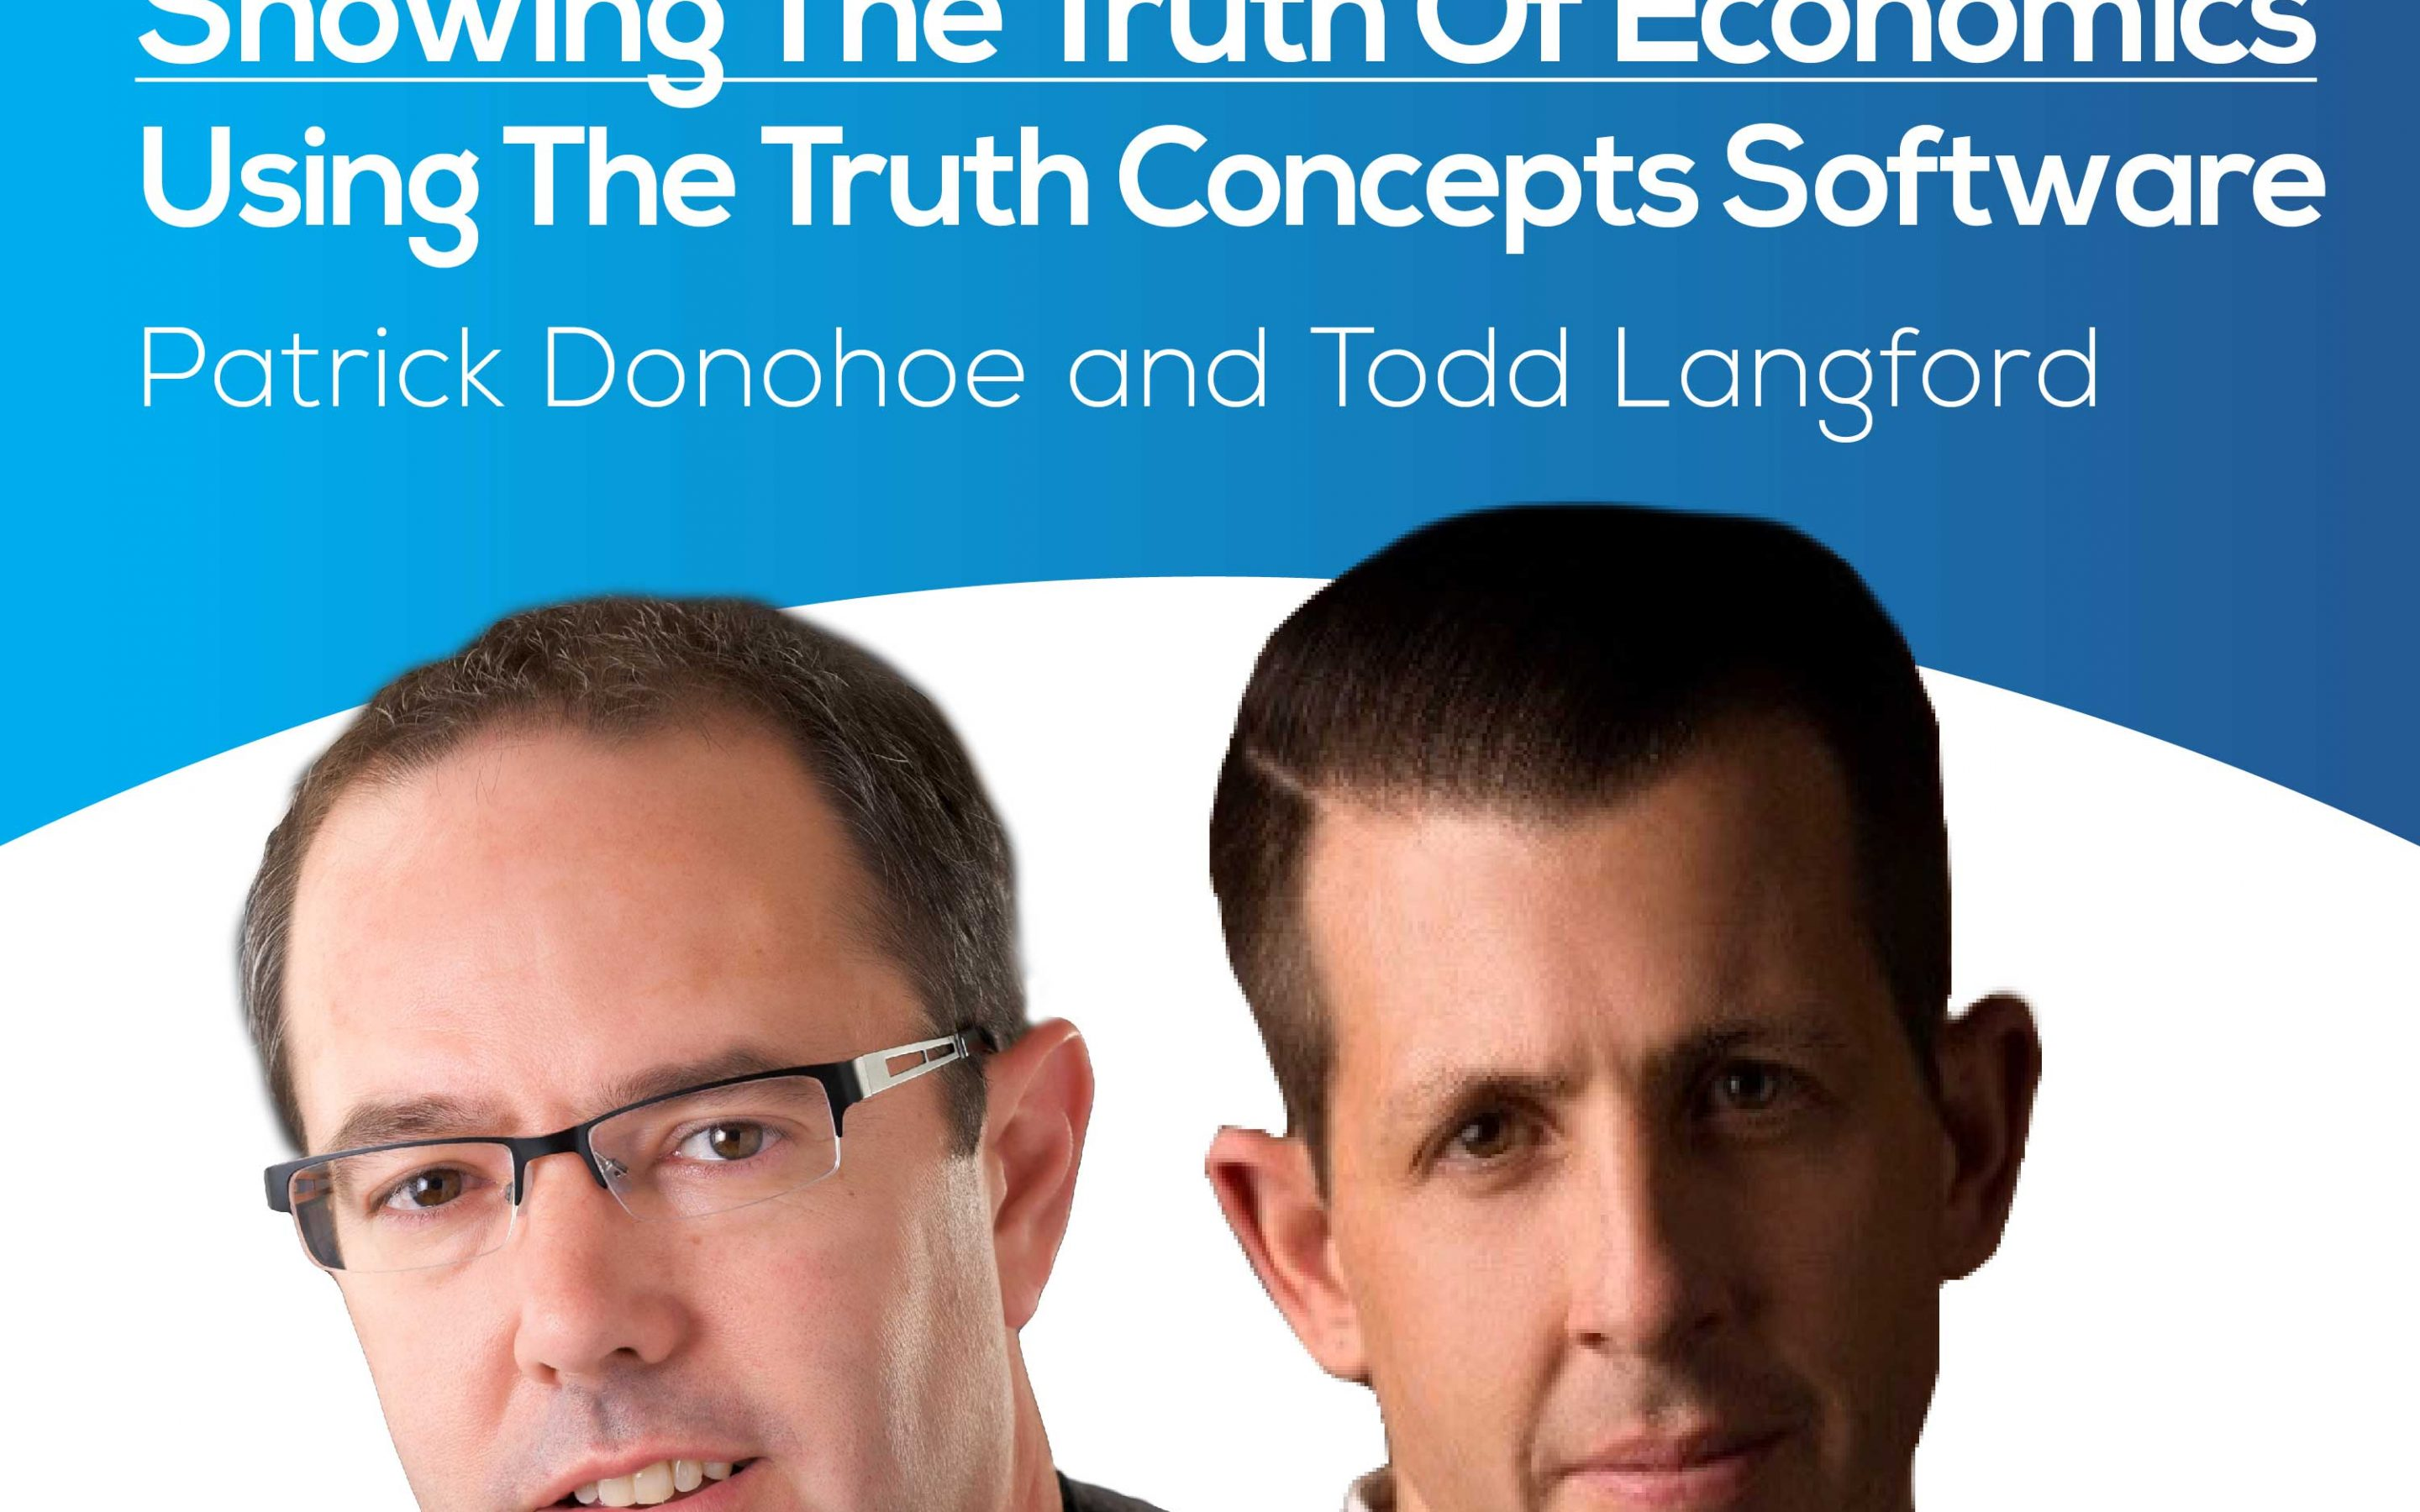 Showing The Truth Of Economics Using The Truth Concepts Software With Patrick Donohoe and Todd Langford – Bonus Episode